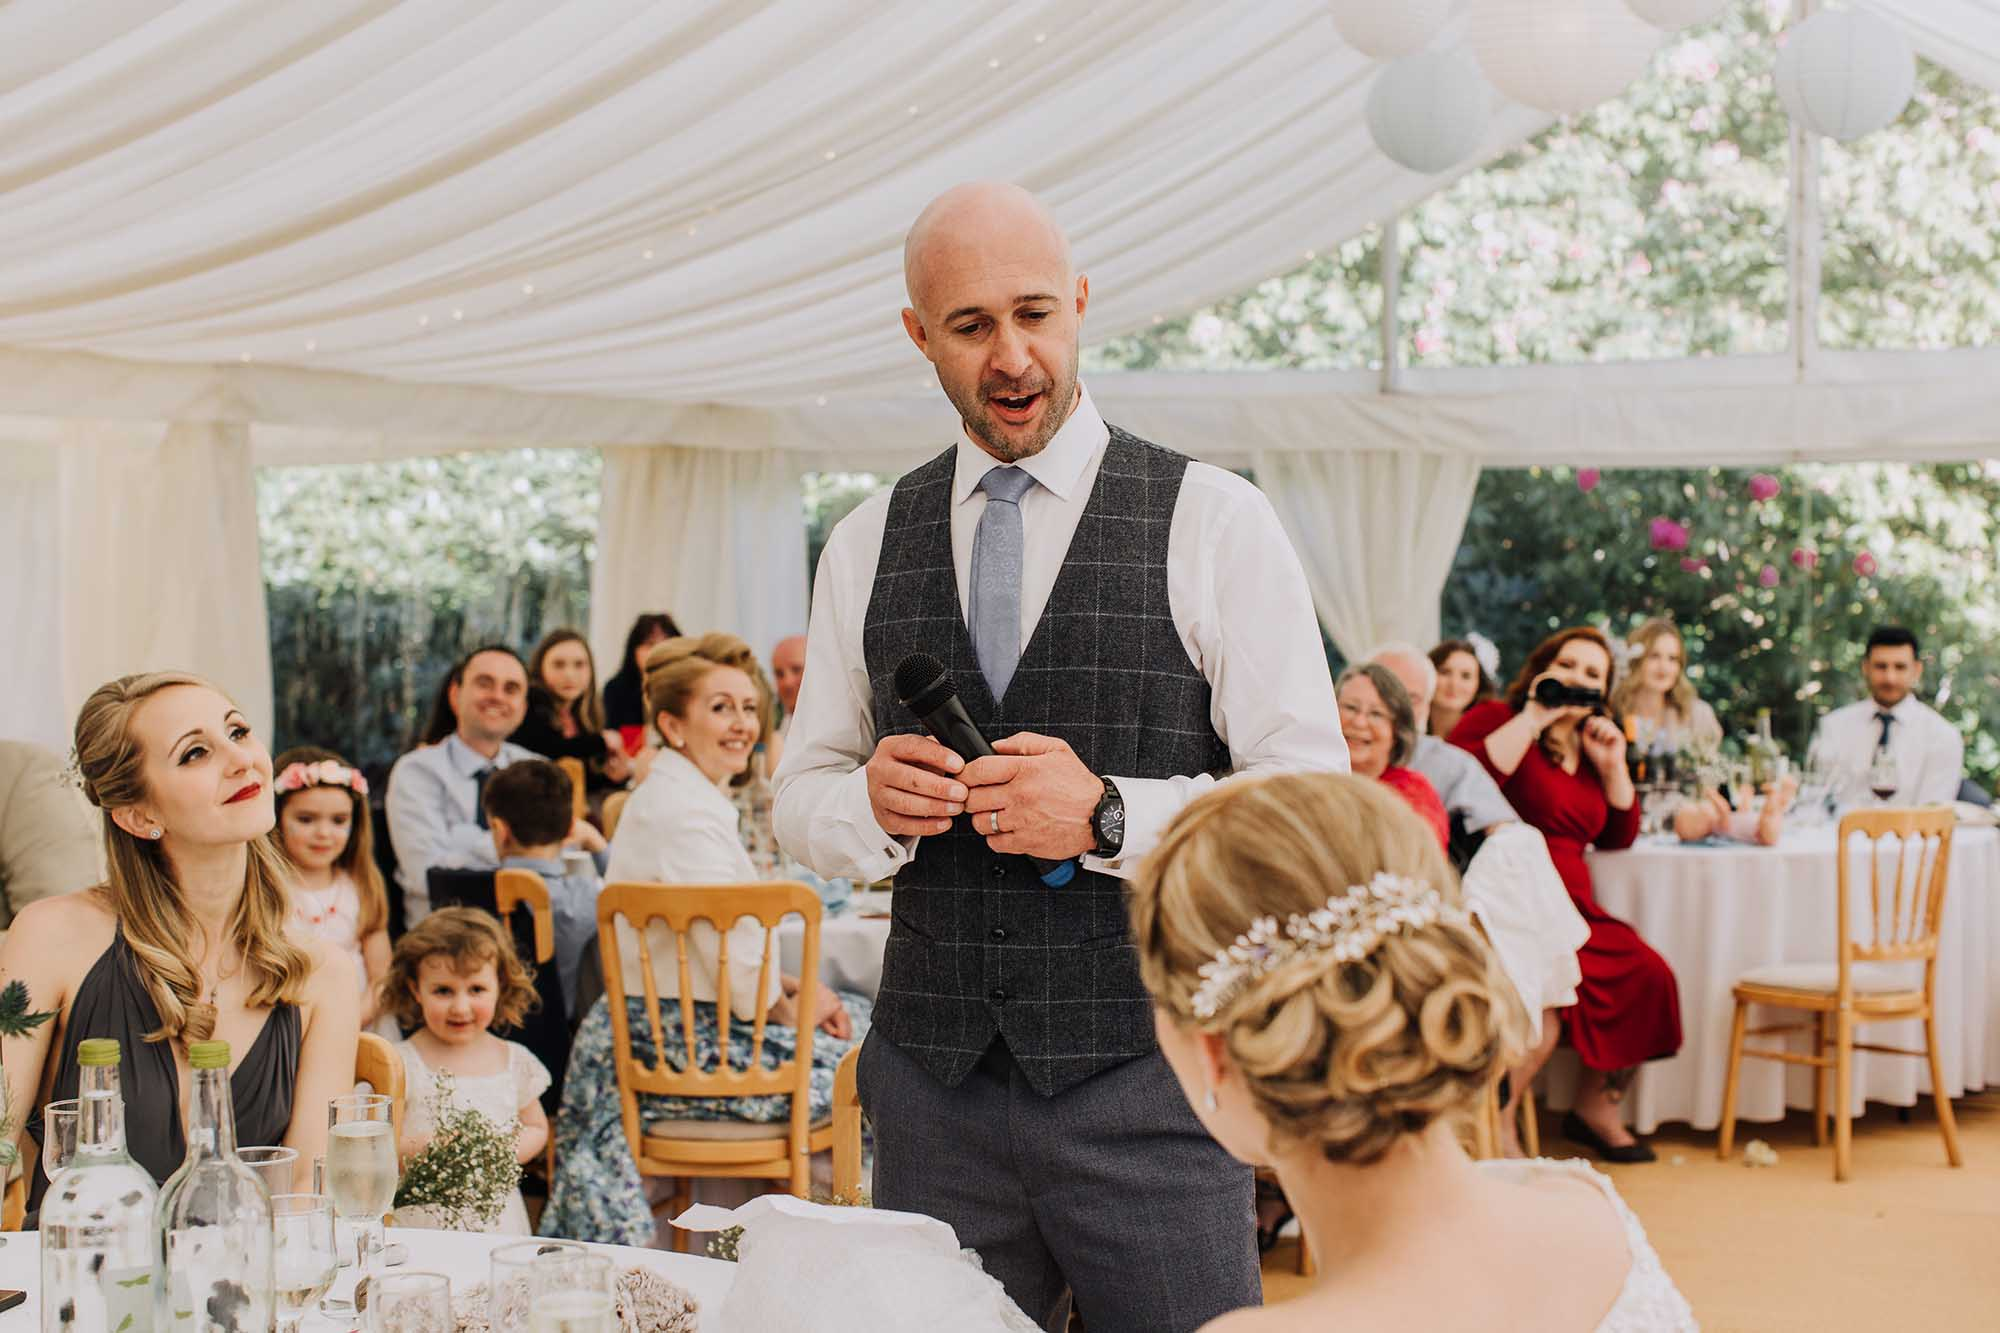 Marquee speeches tros yr afon anglesey